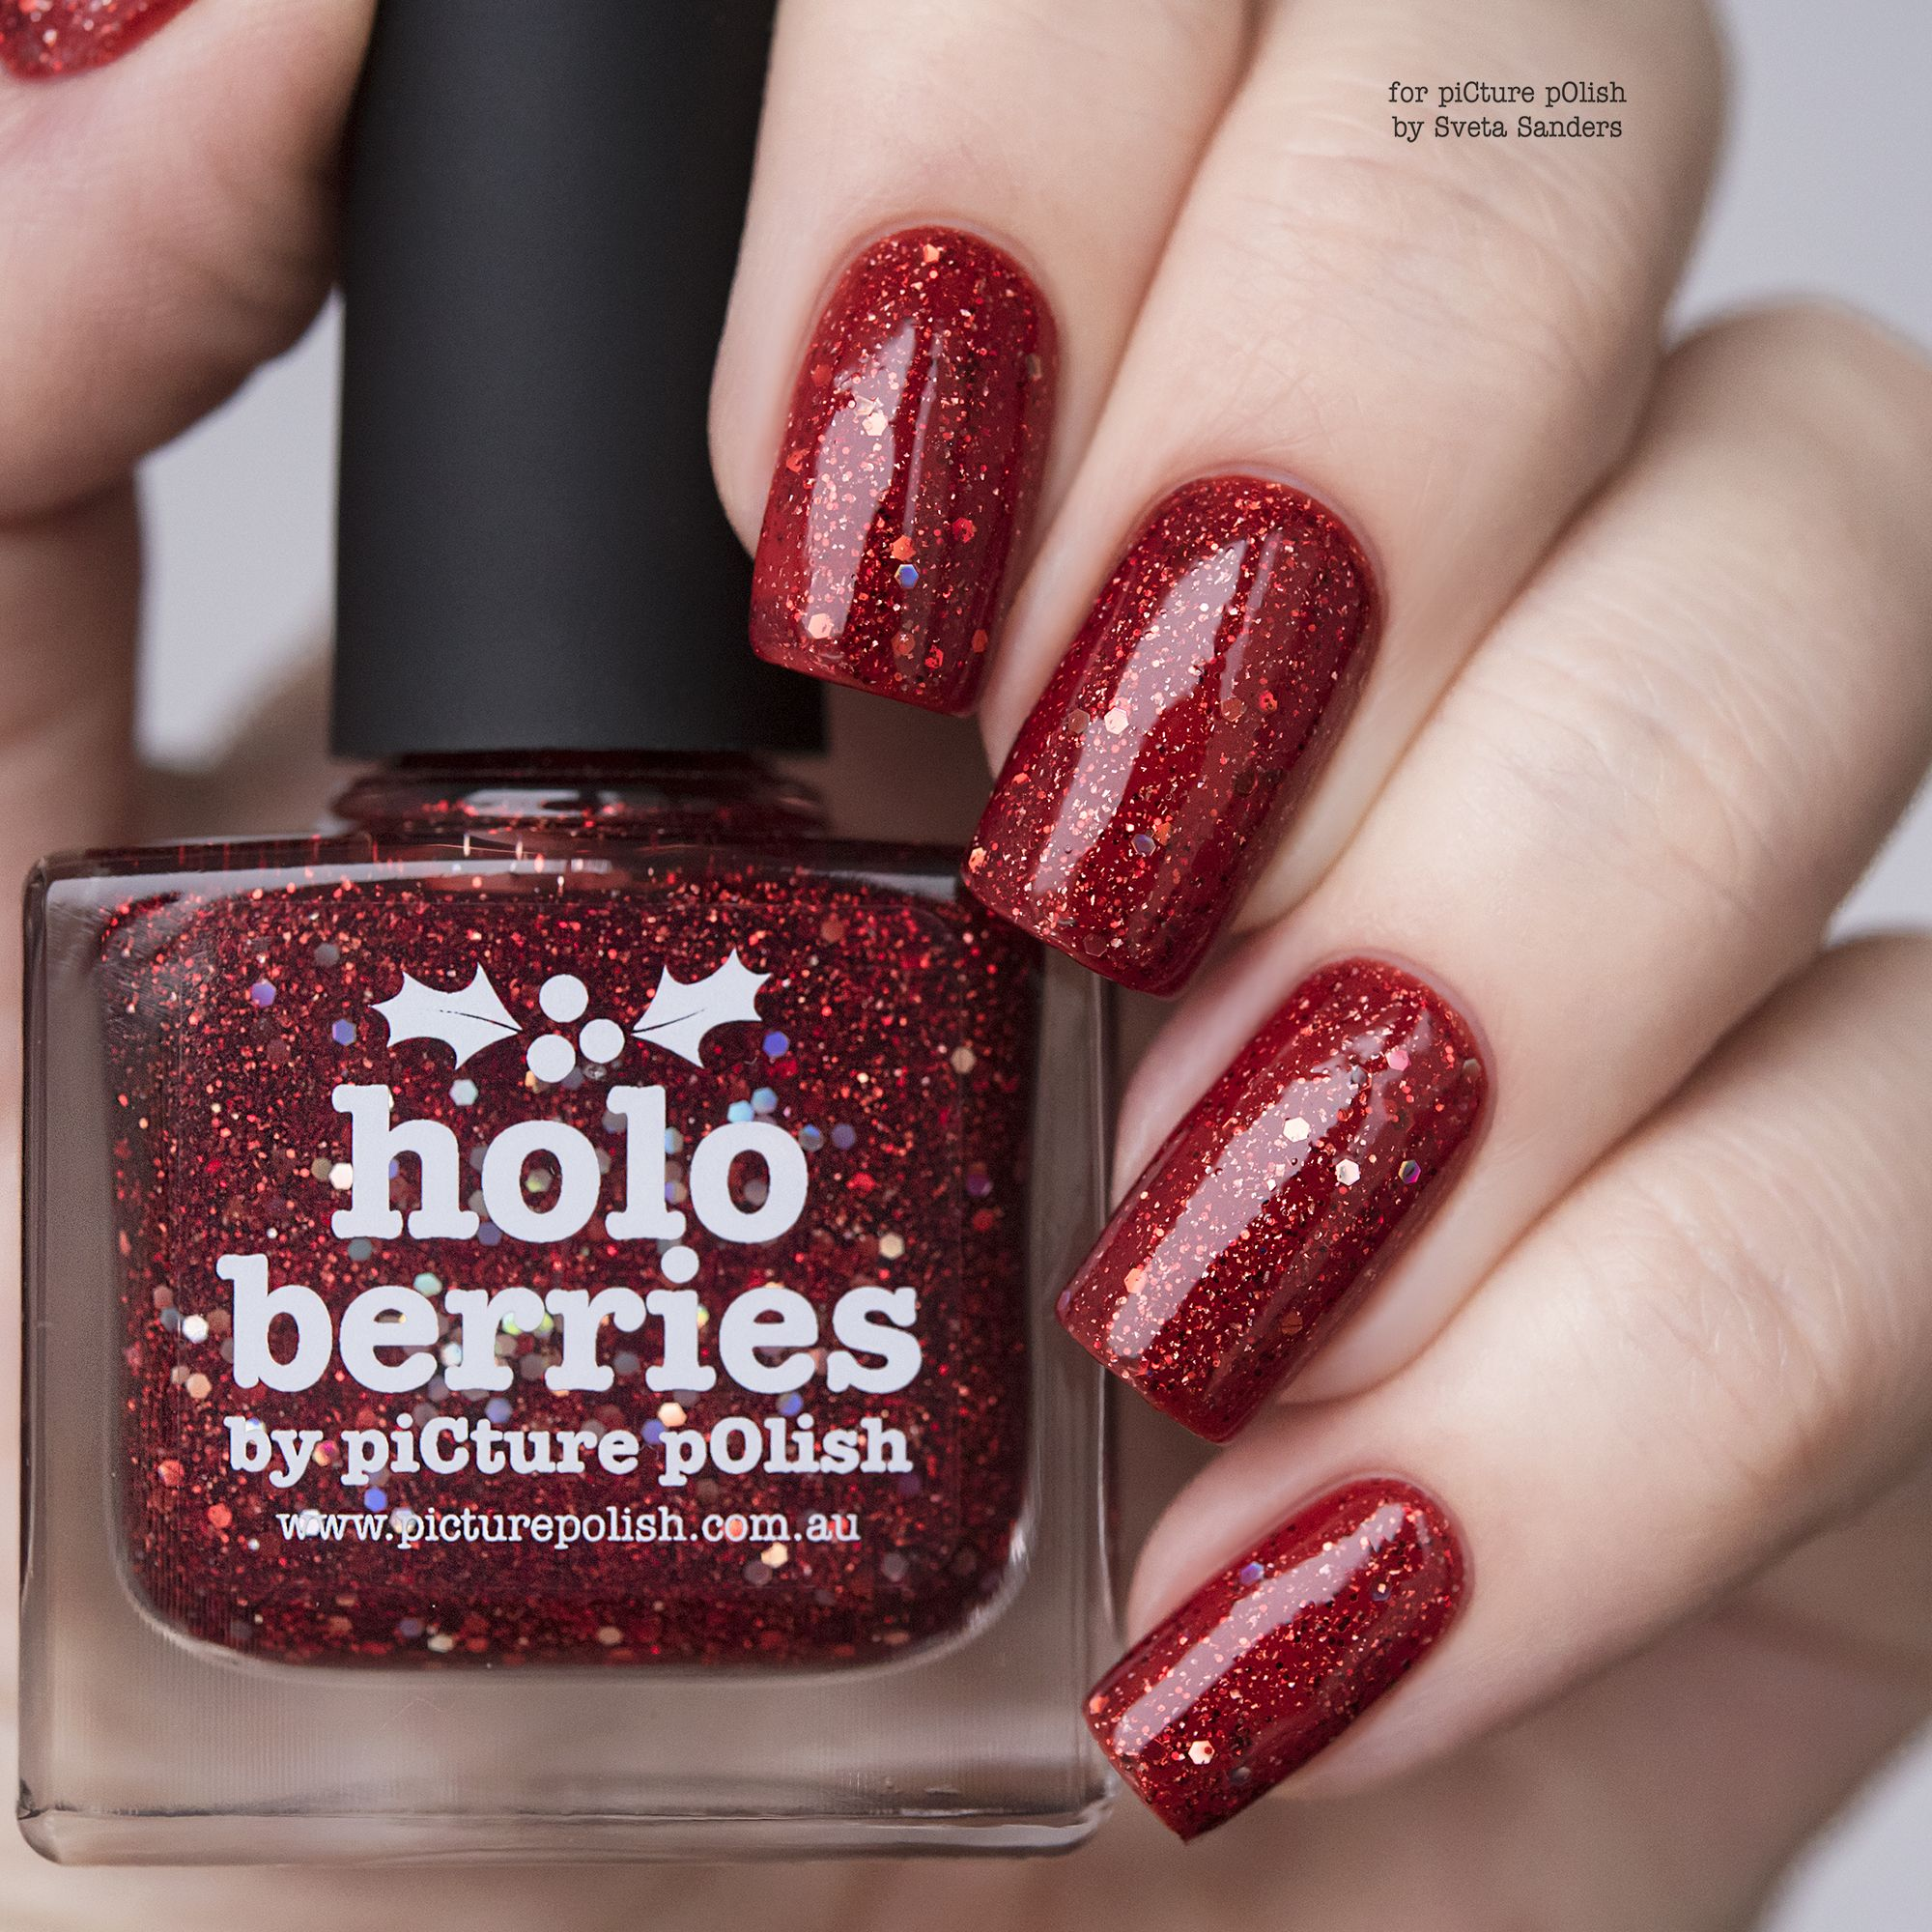 Meet NEW \'holo berries\' special edition | Nail polish swatch ...